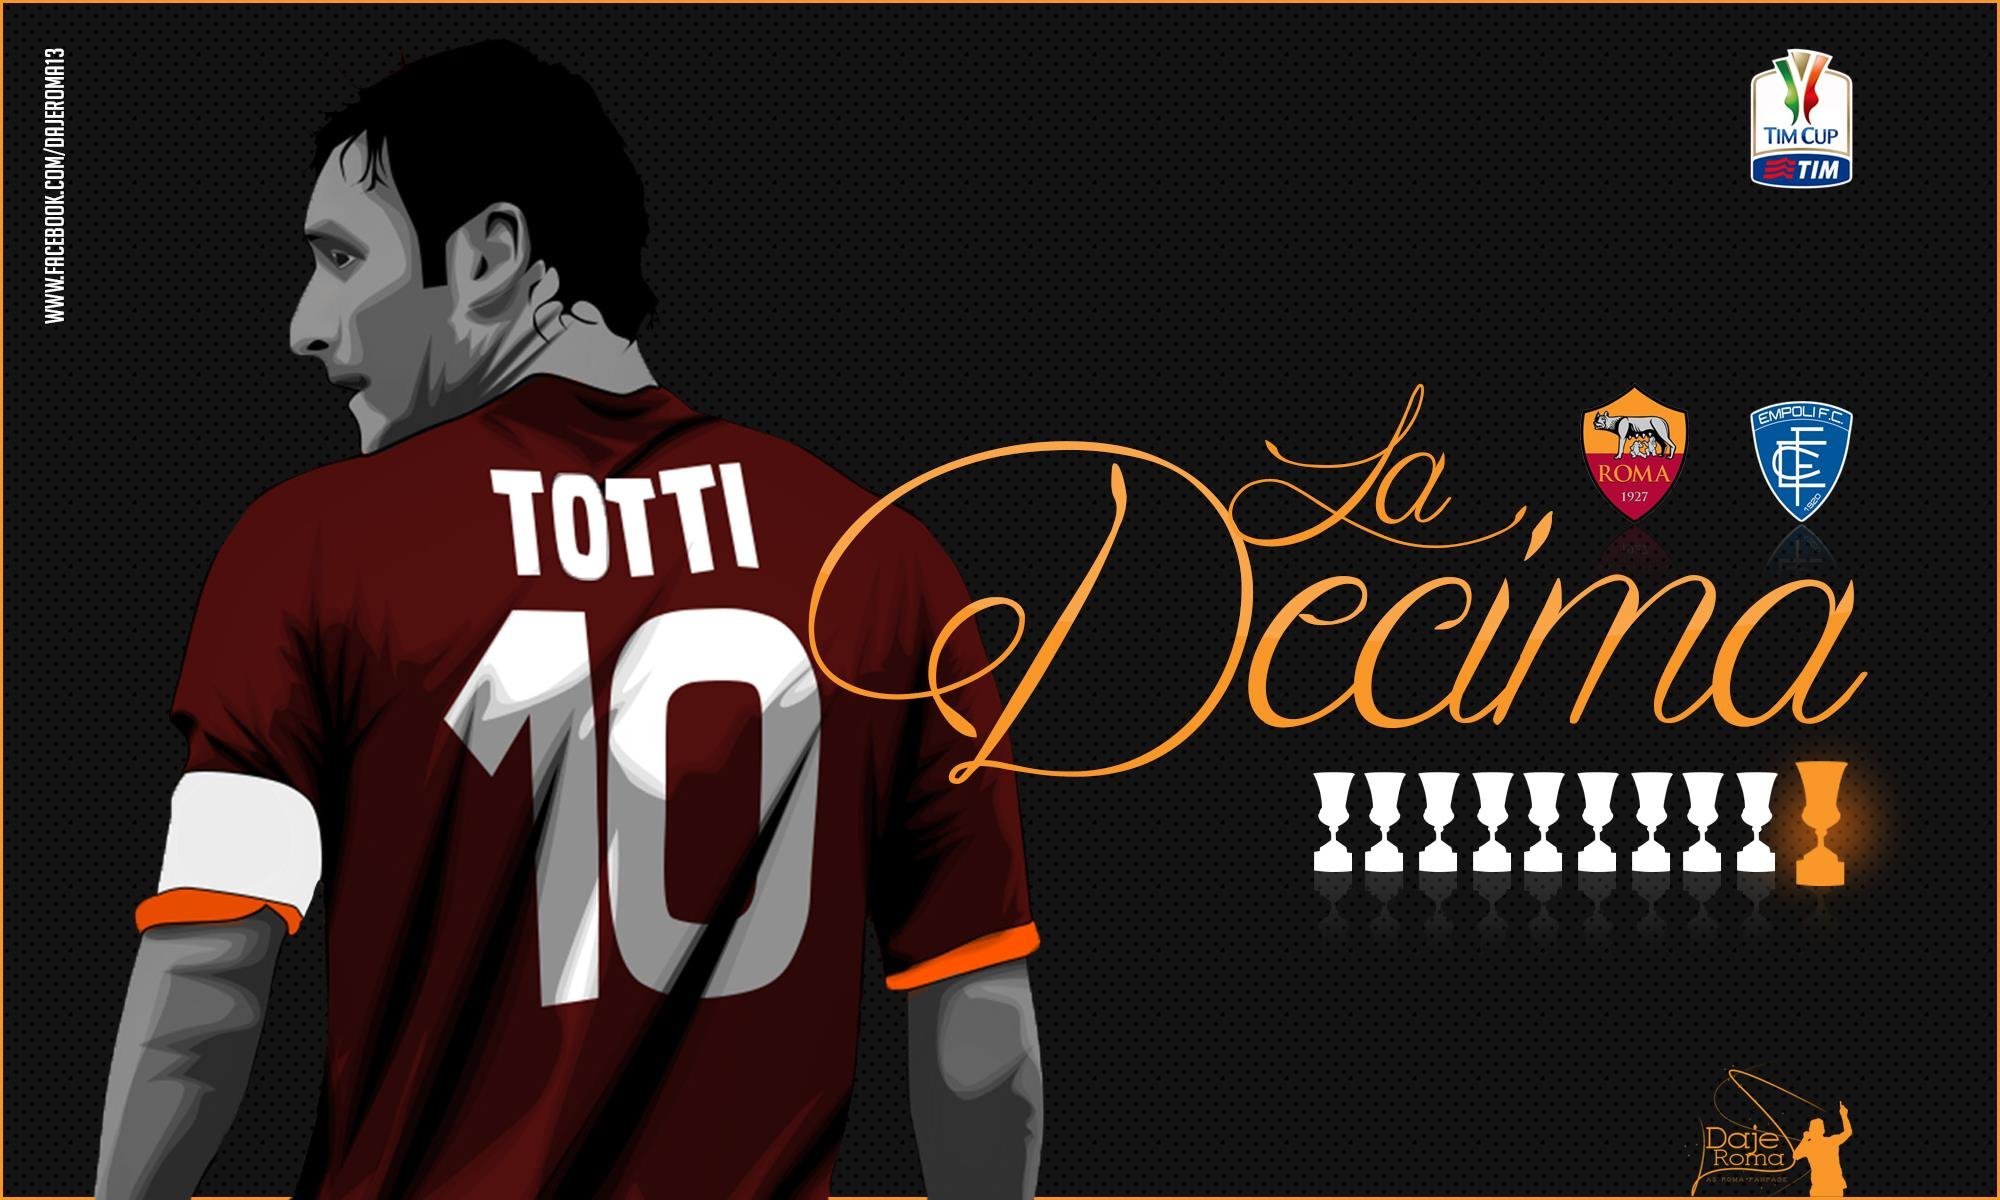 timcup_1_8_roma_empoli